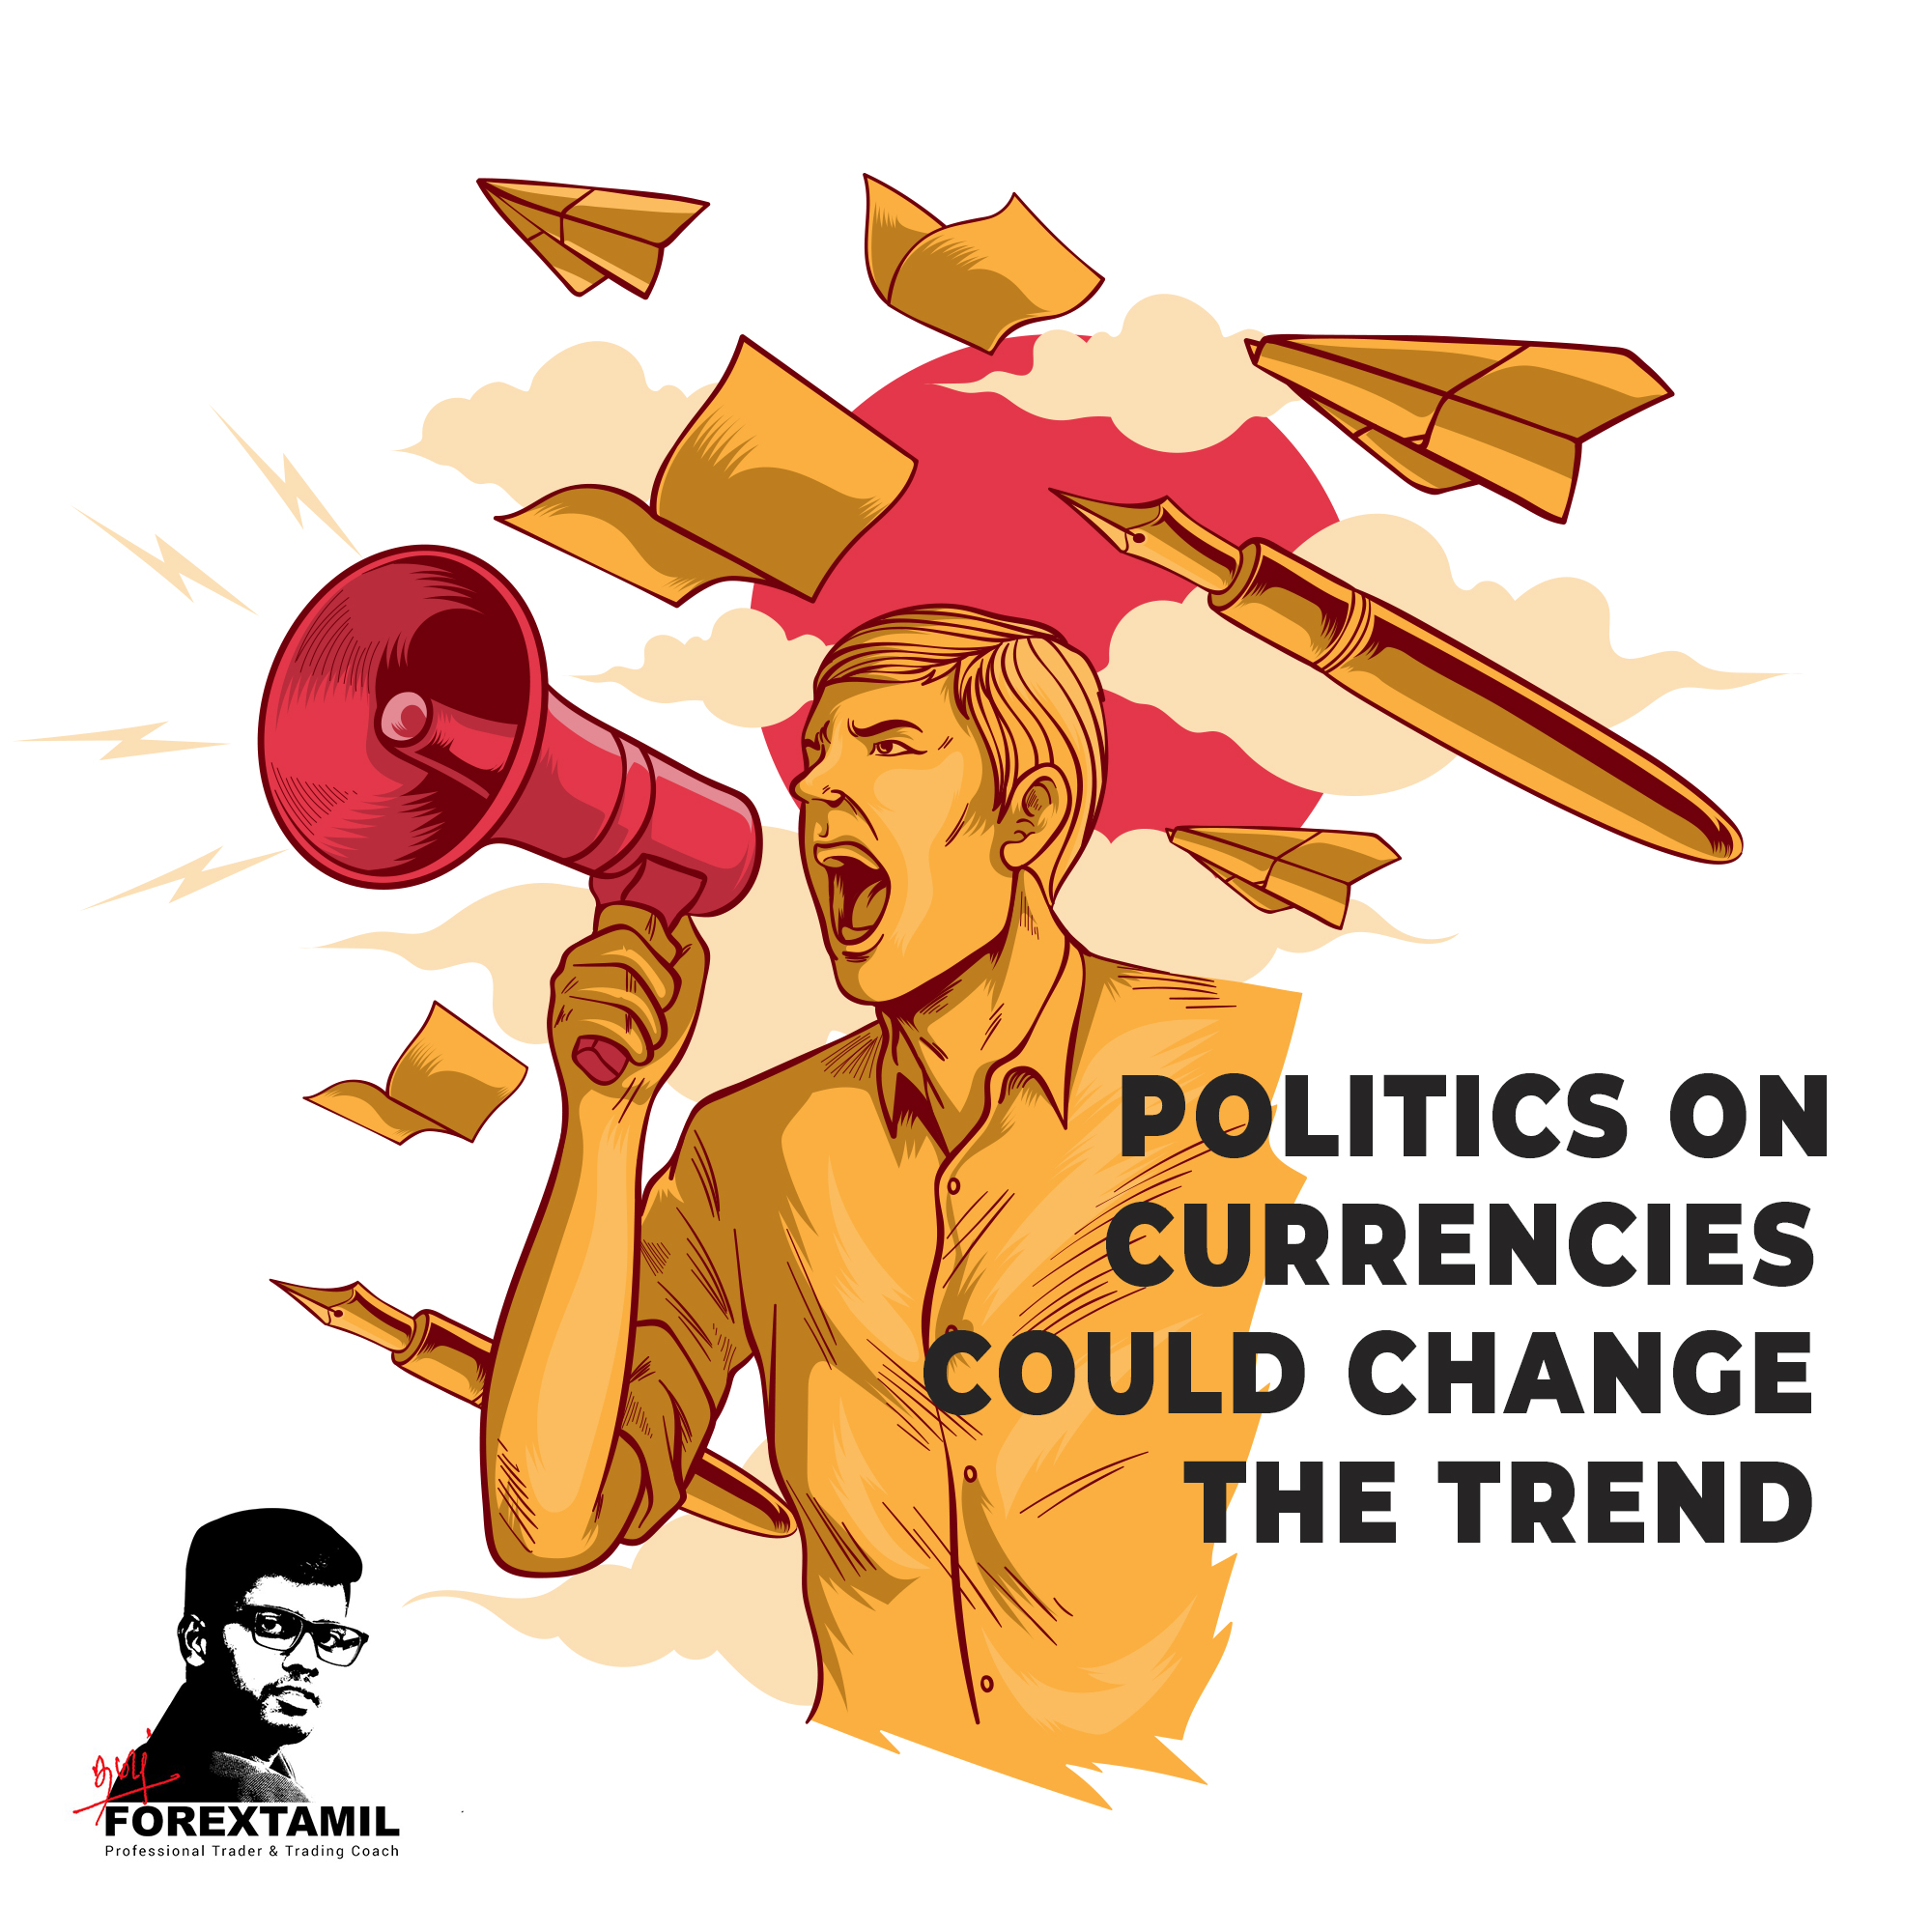 Politics on Currencies Could Change the Trend.